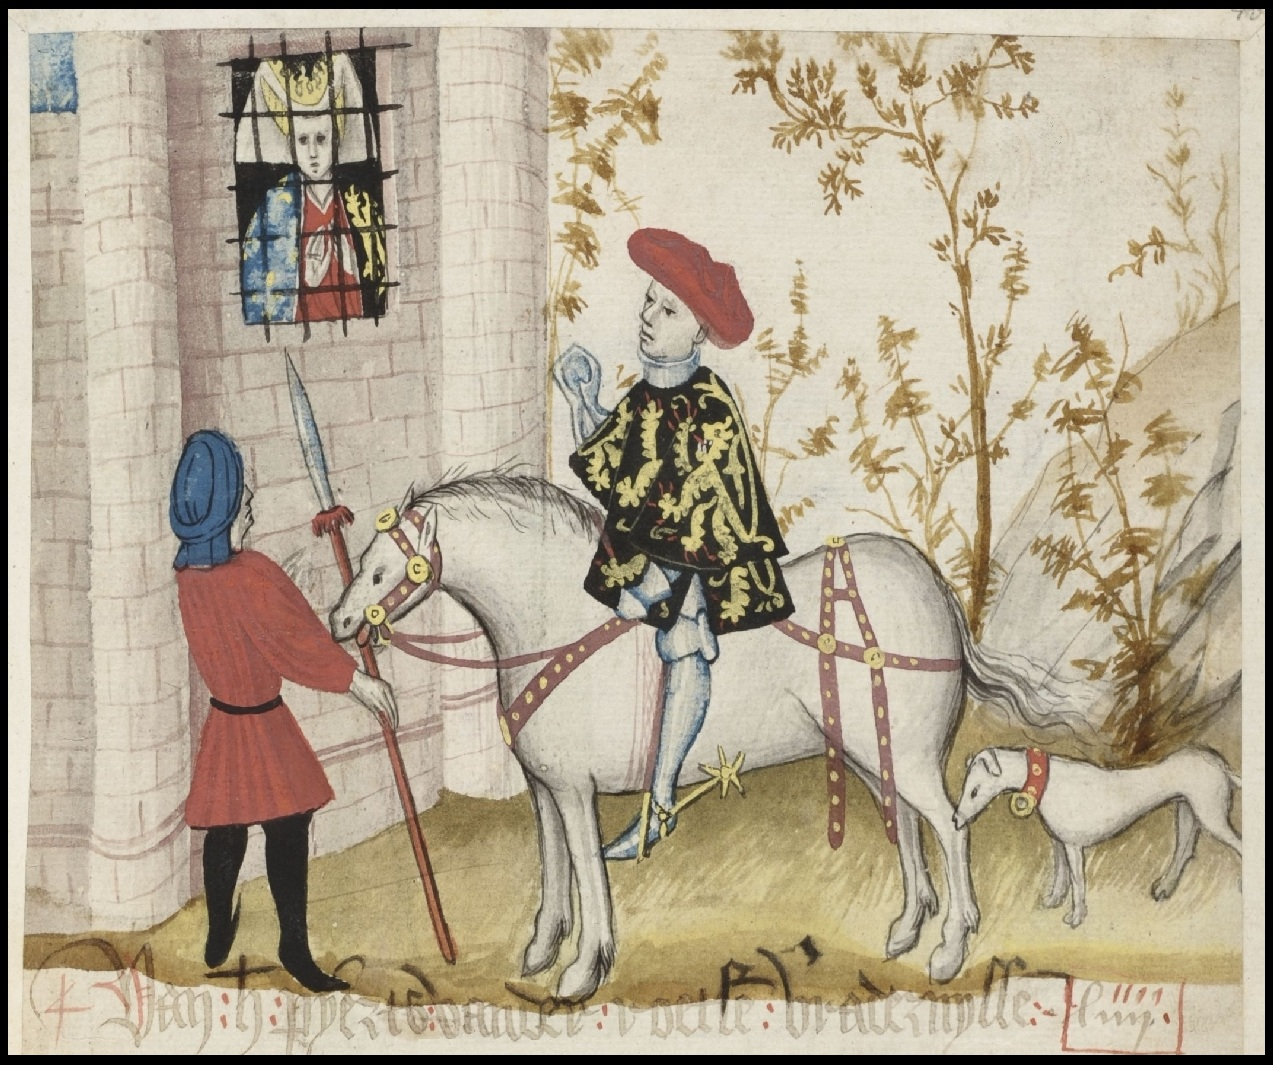 noble on horseback visits noblewoman in jail